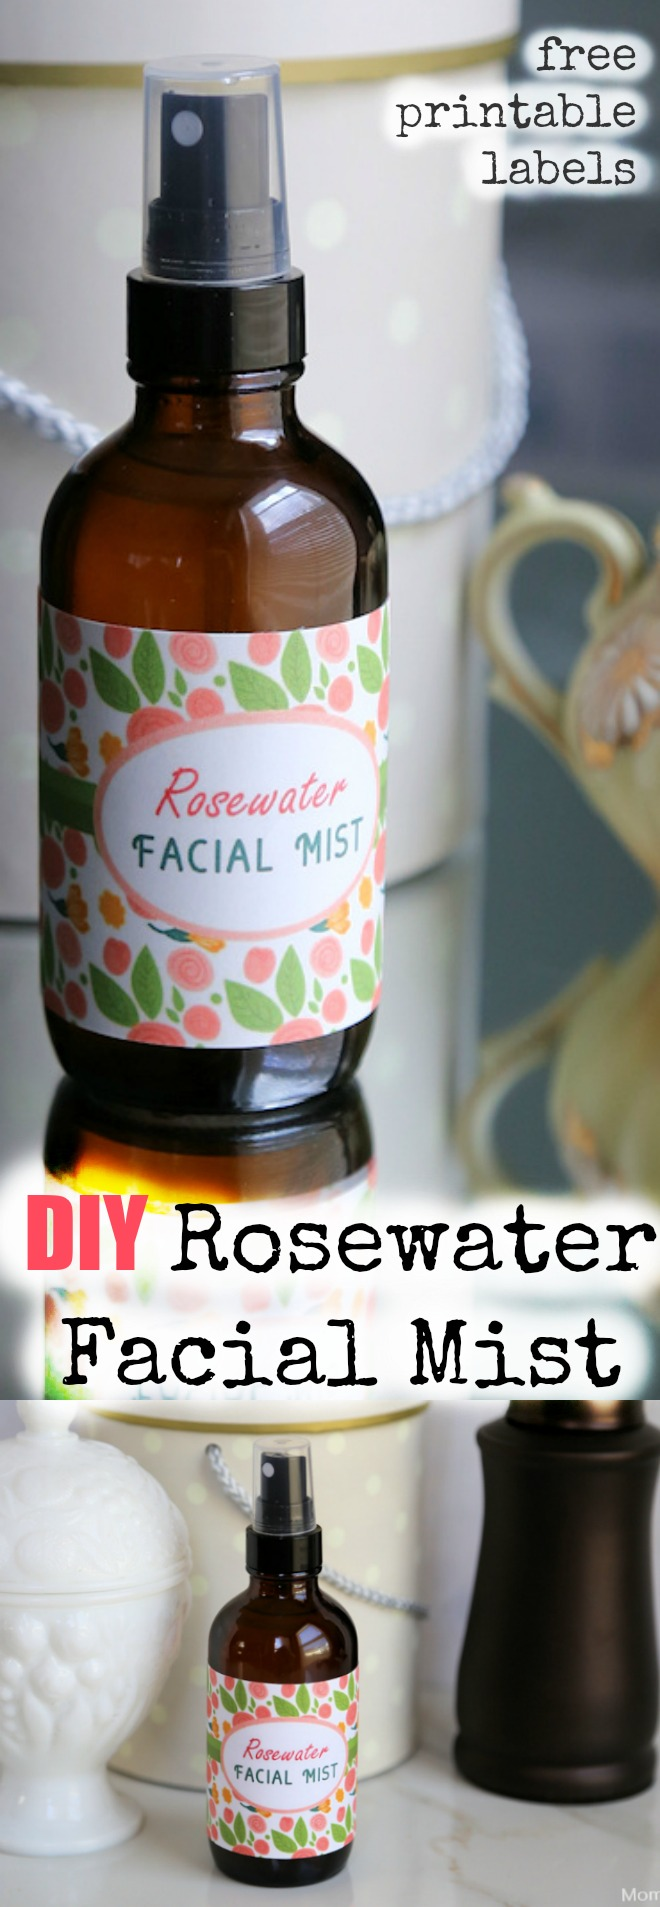 DIY Rosewater Facial Mist with free printable labels